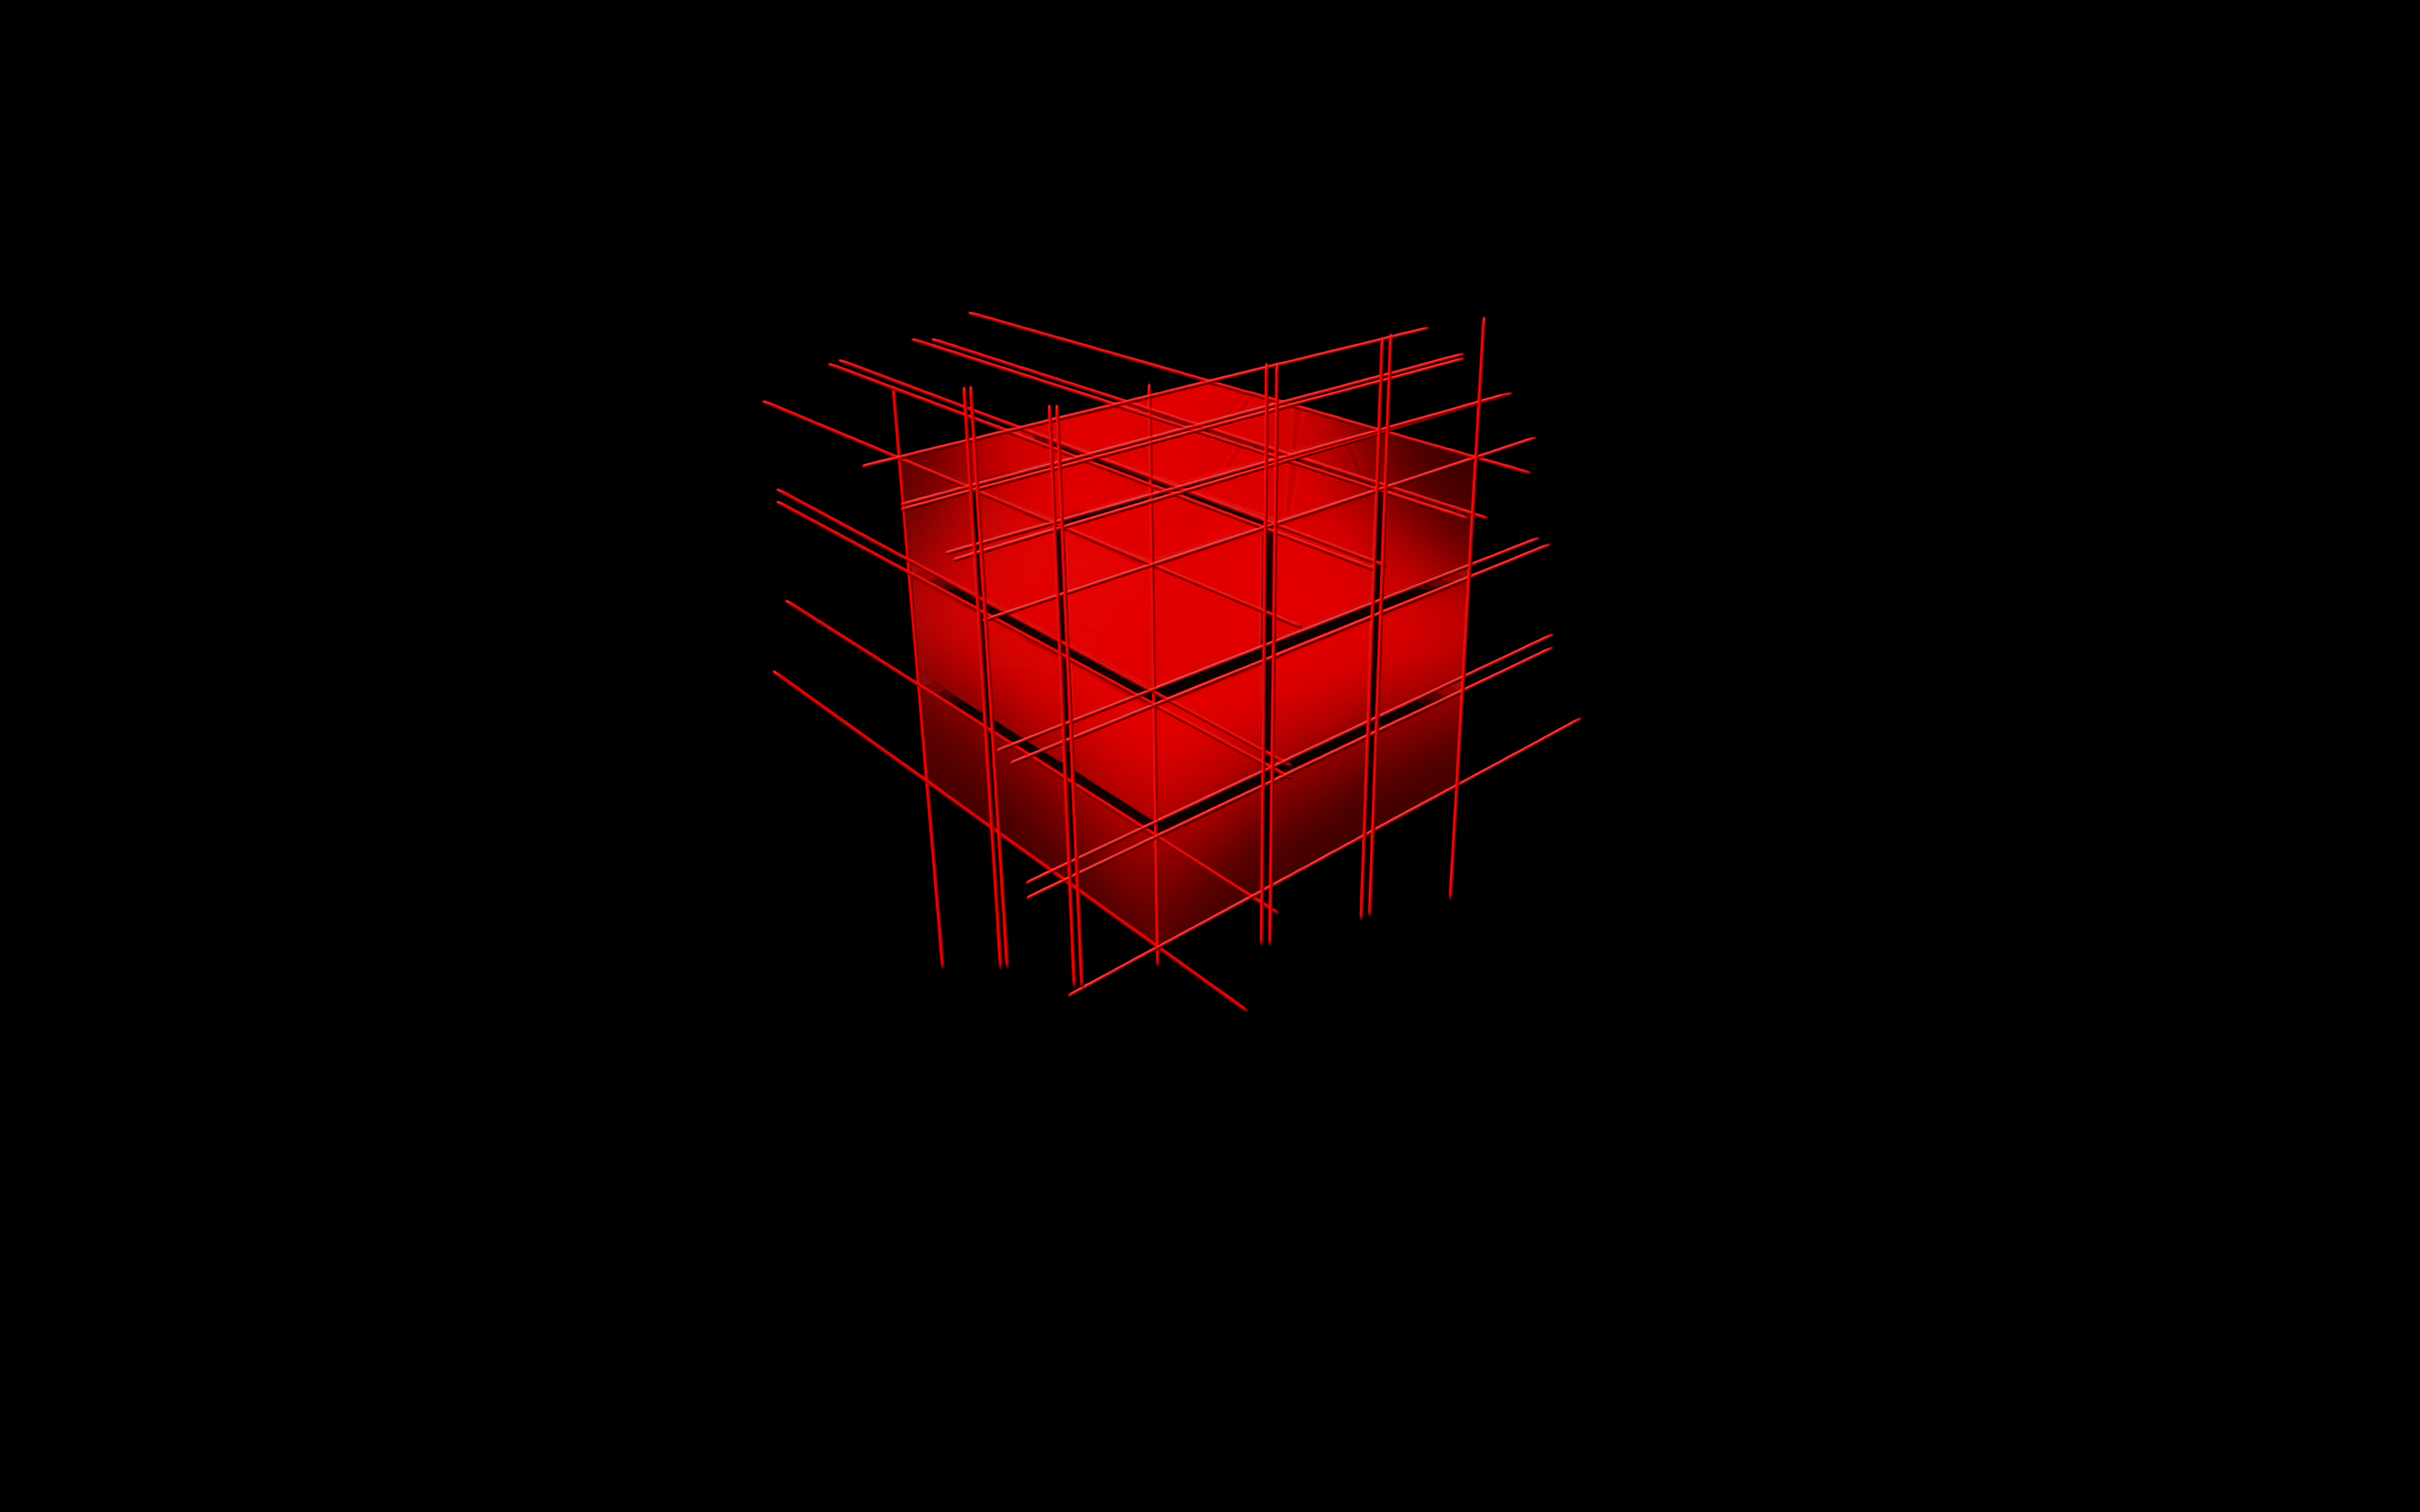 red black cubes iphone wallpaper iphone 3g wallpaper background 2560x1600